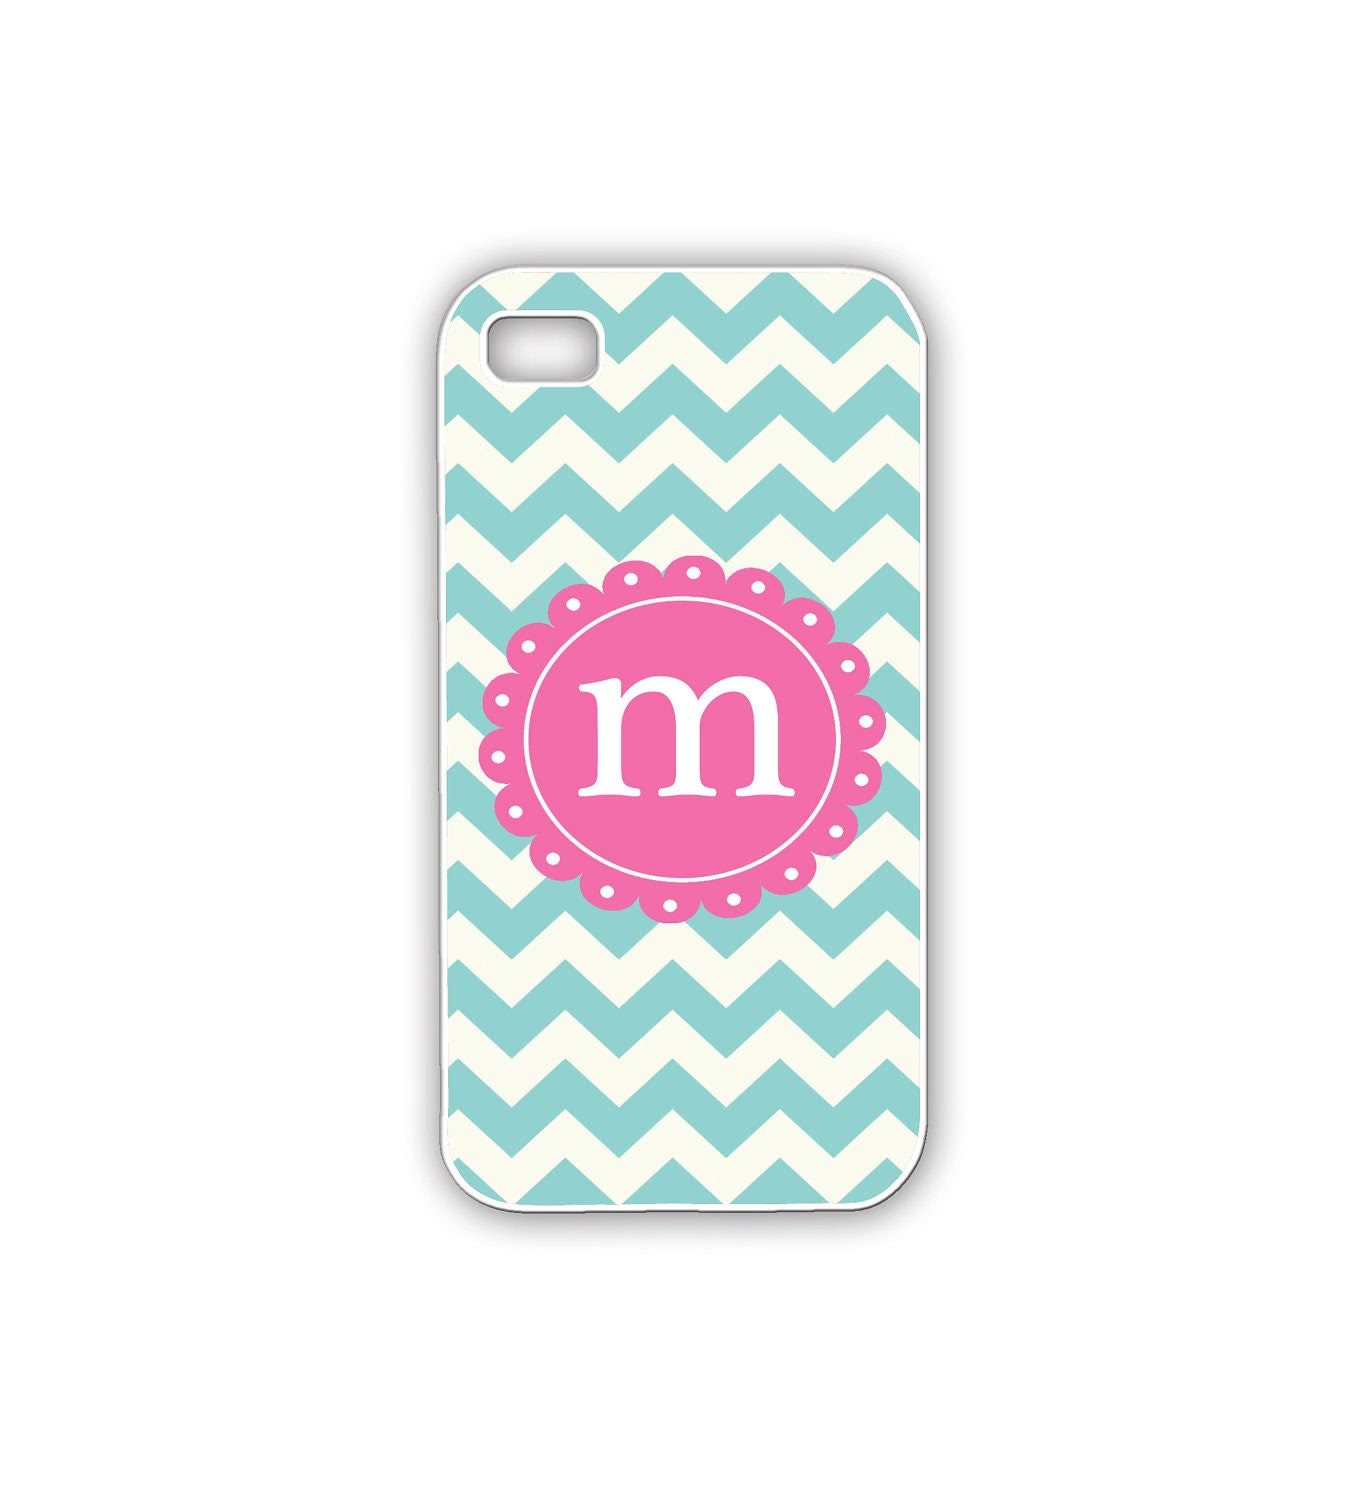 iPhone Case with Turquoise Chevron Monogrammed iPhone Case in Pink and Turquoise Womens iPhone Gift